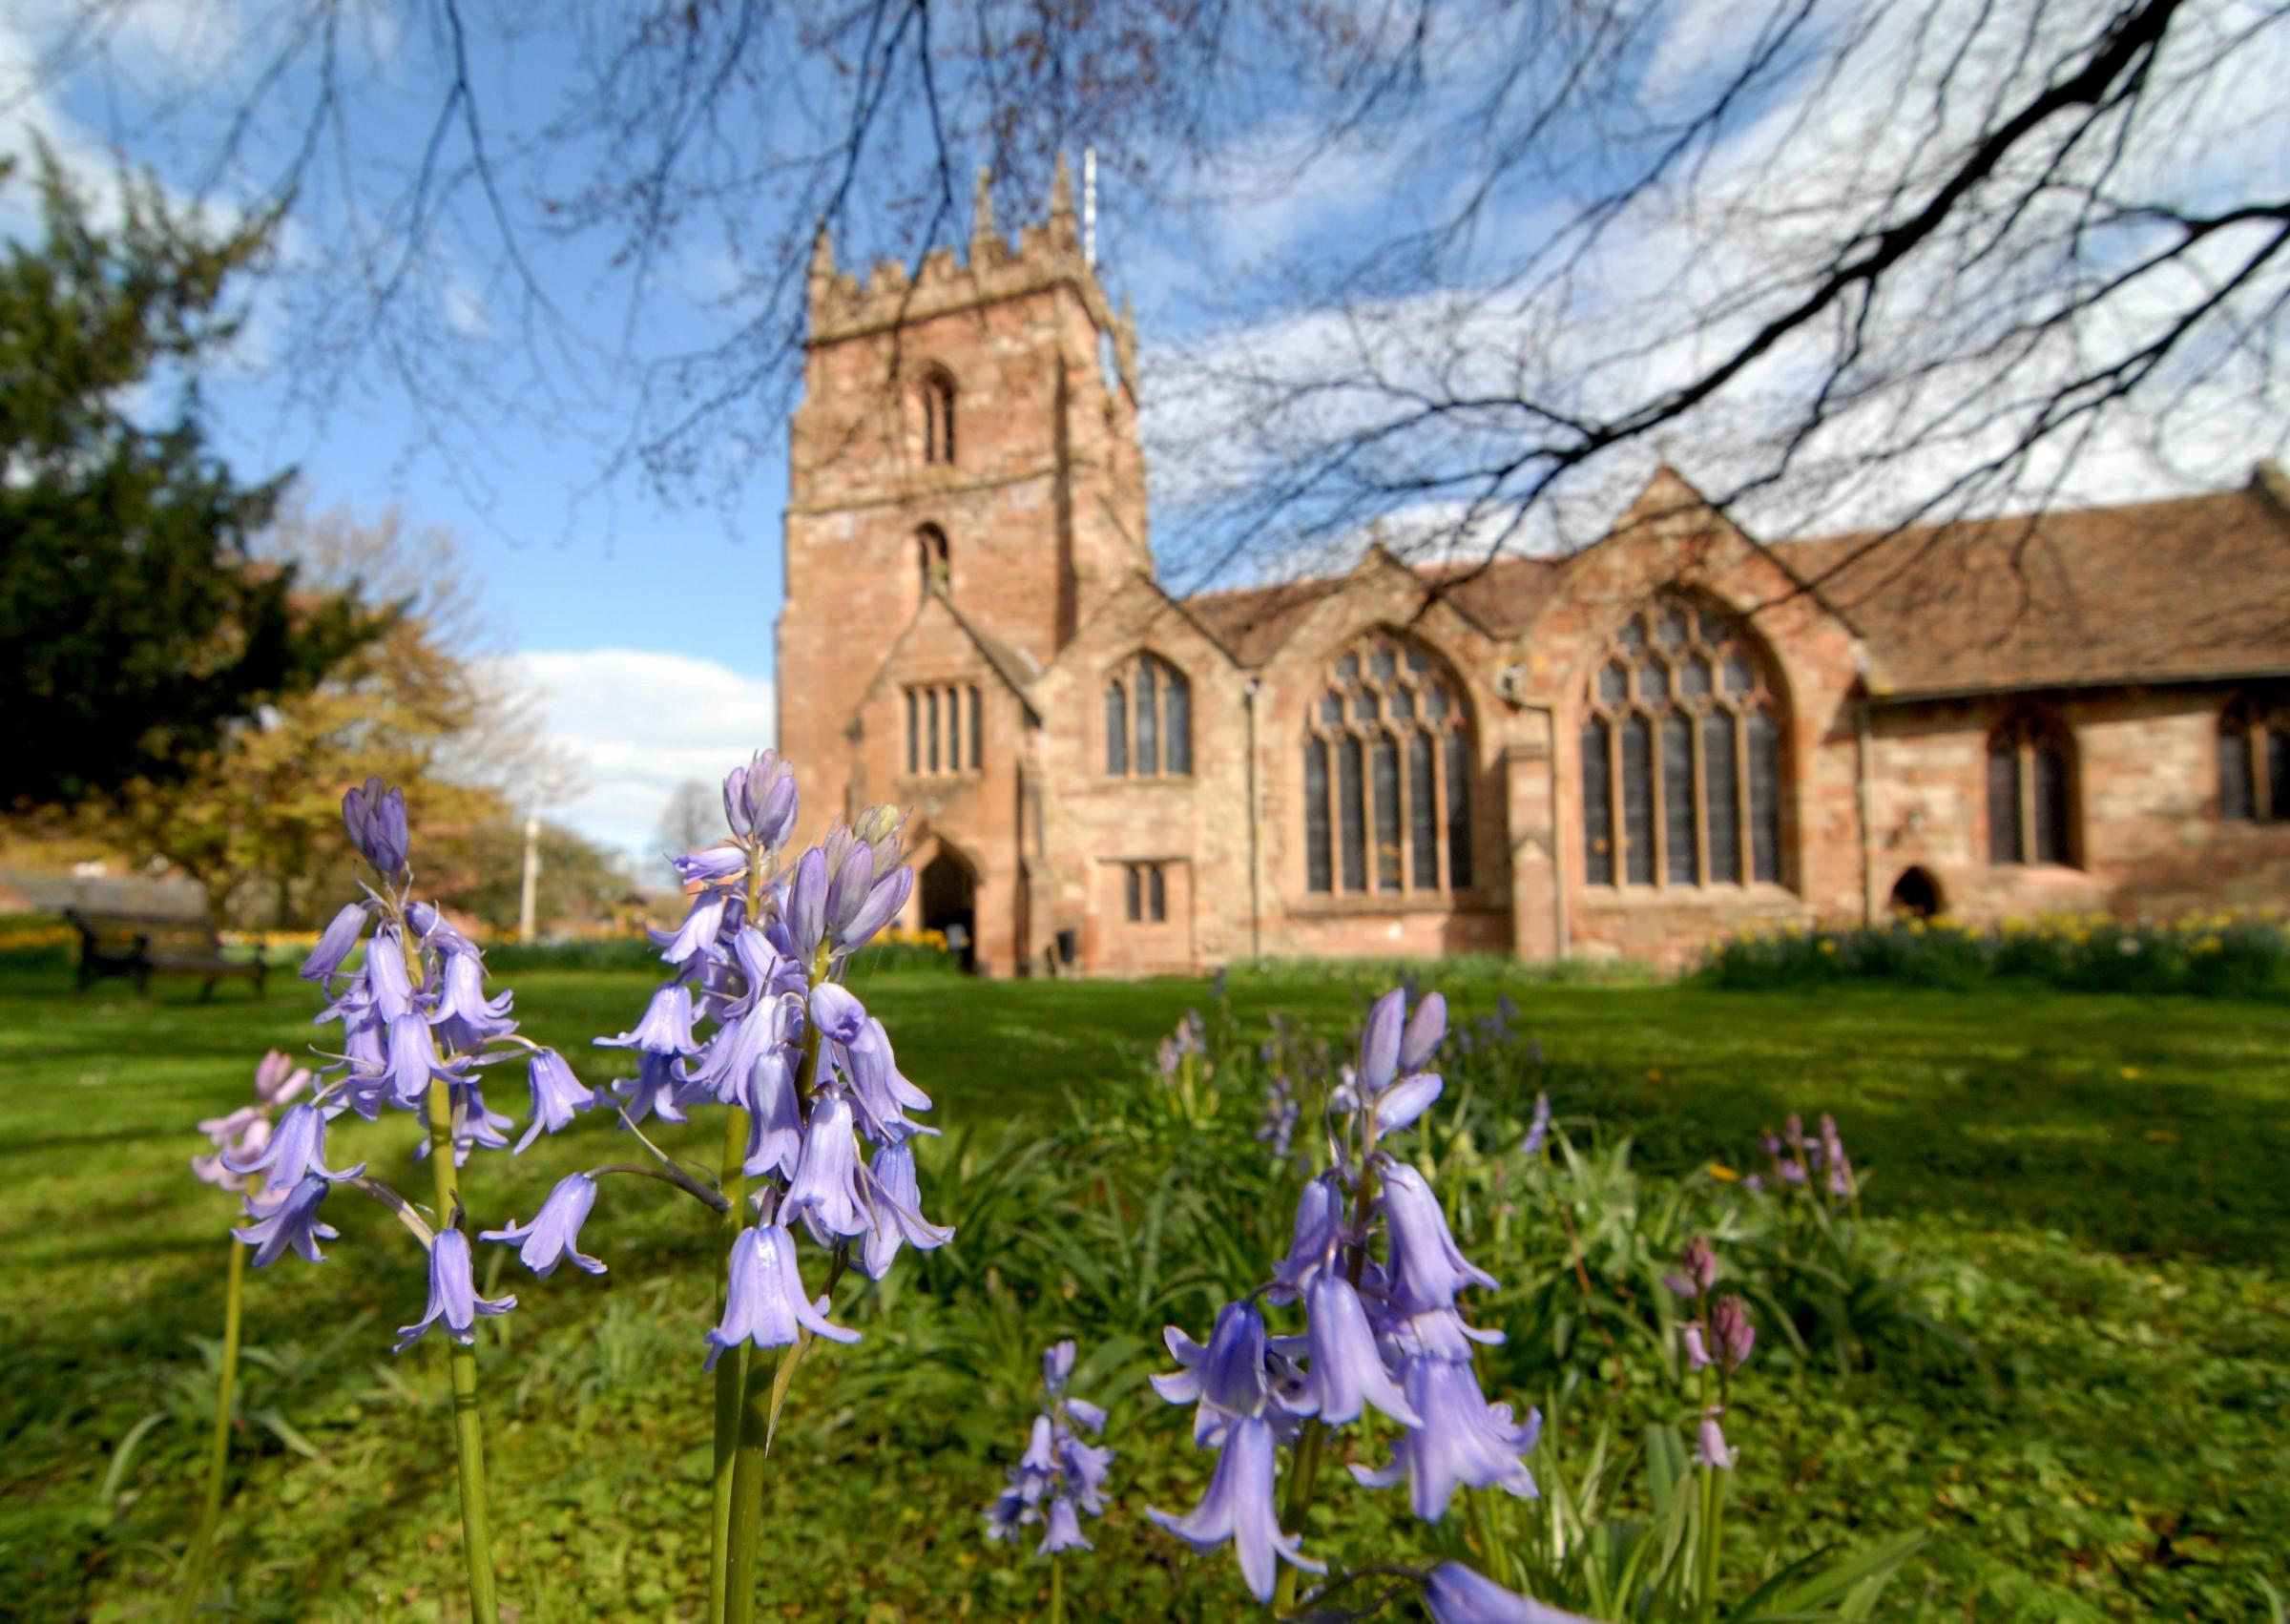 1514573401. 13/04/14. Bluebells in the grounds of St John in Bedwardine church. Picture by Ni